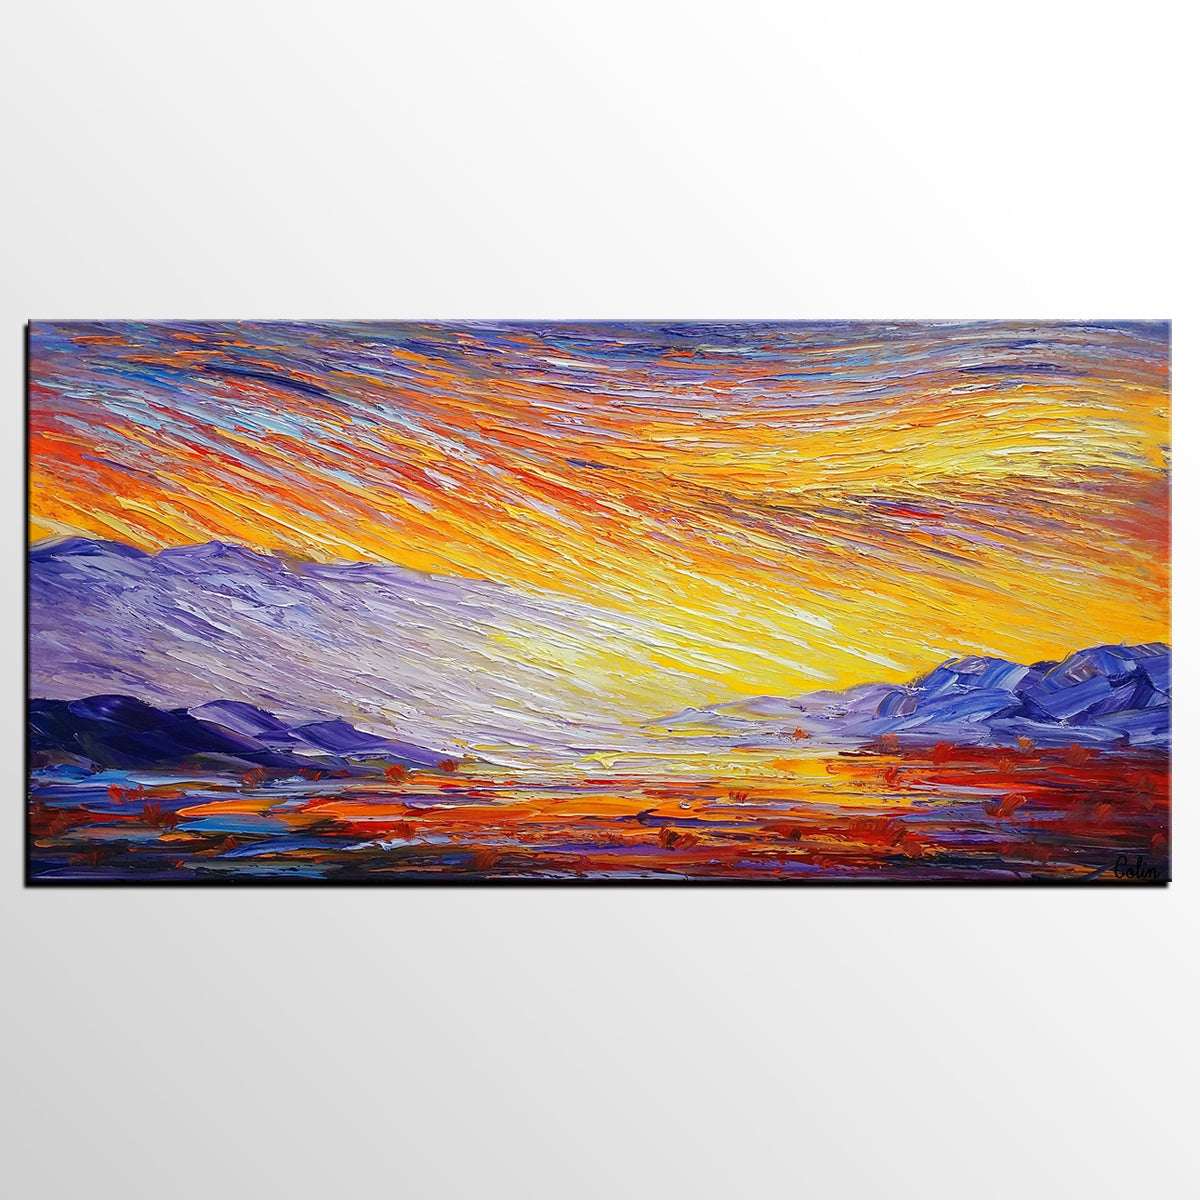 Abstract Landscape Painting, Large Canvas Art, Wall Art, Original Artwork, Modern Art